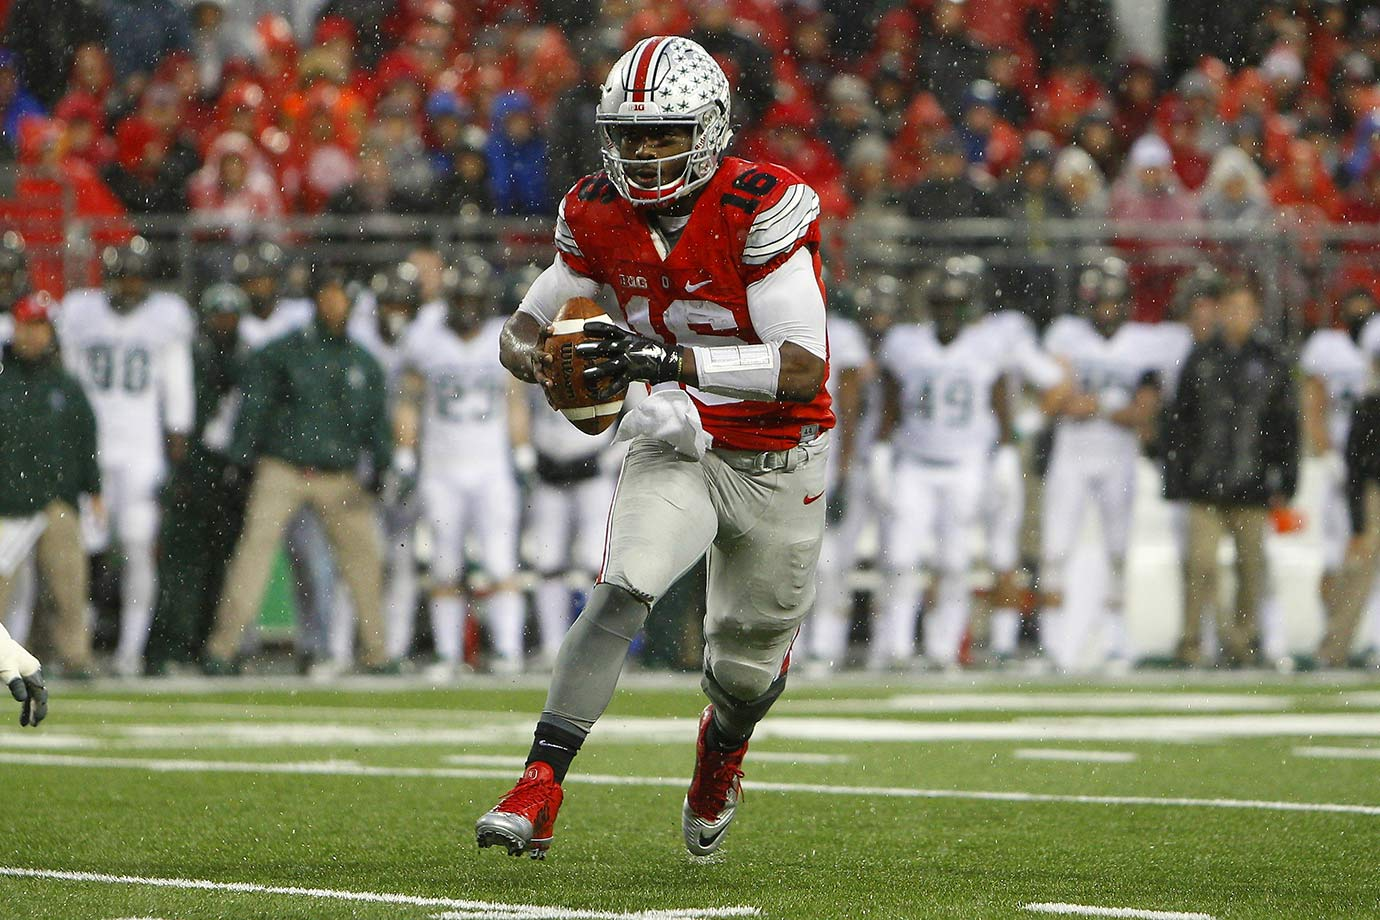 After splitting time with Cardale Jones last season, Barrett will finally have the quarterback position to himself for the first time since he helped get the Buckeyes to the national championship in 2014. He only threw for 992 yards and 11 touchdowns in all of last season after throwing for 2,834 yards and 34 touchdowns in '14.